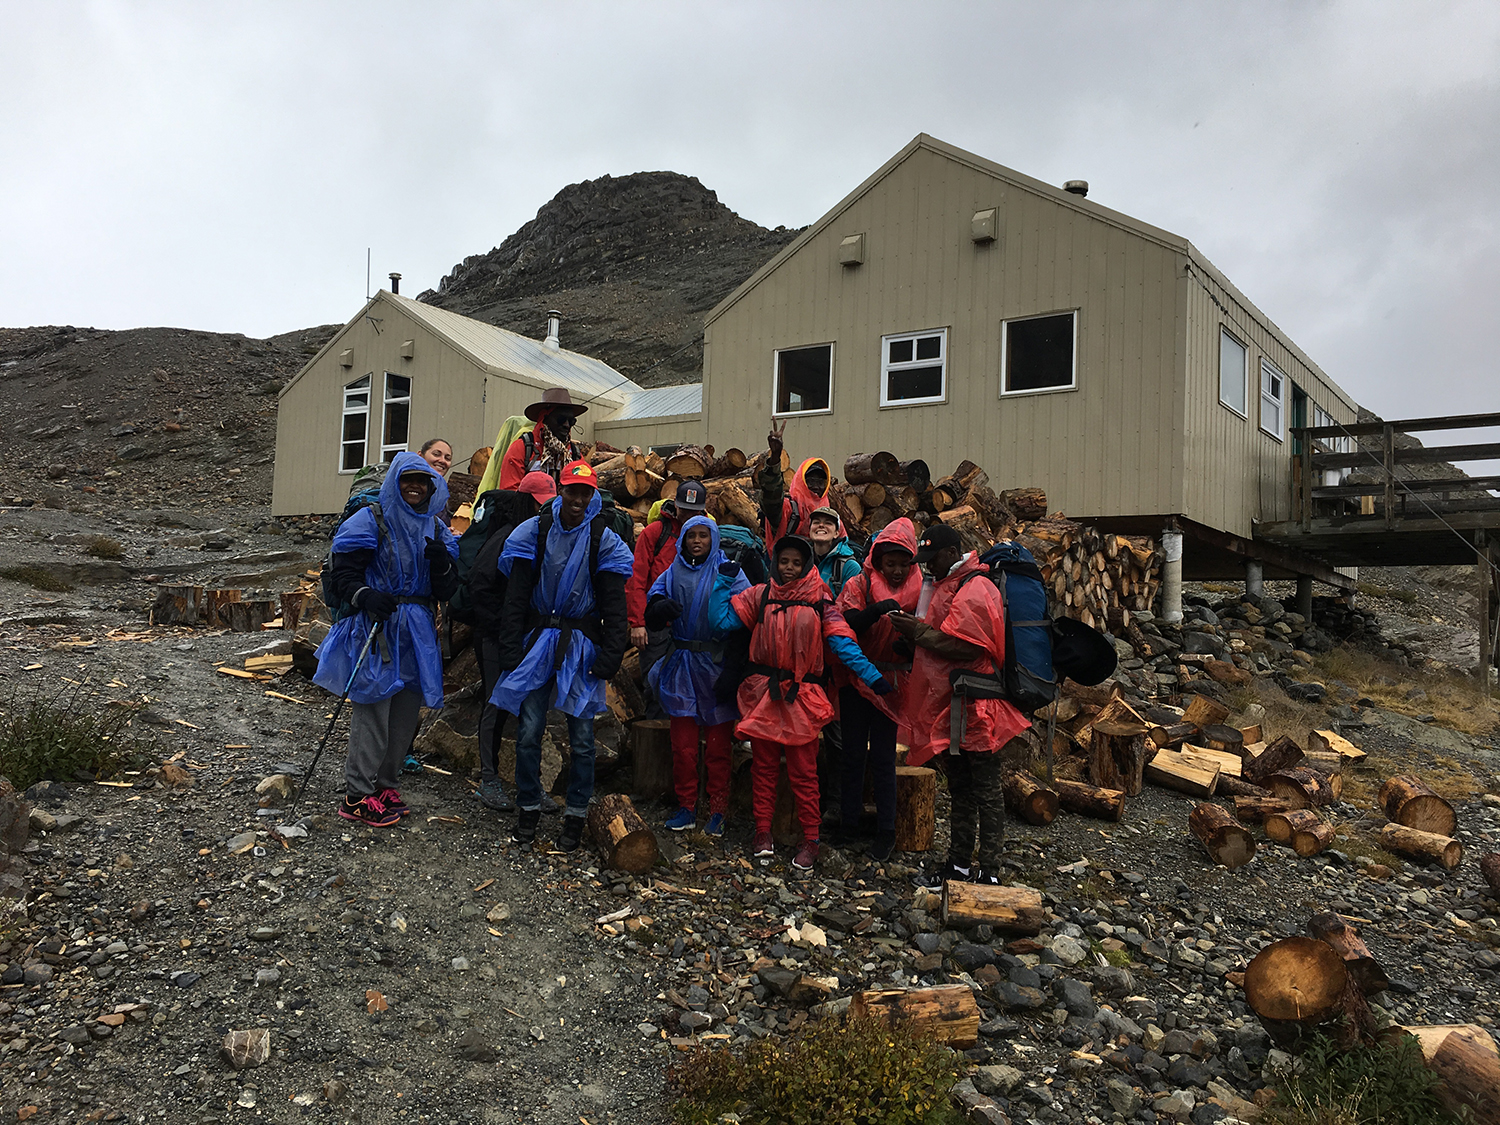 Our whole group in front of Bow Hut. The ponchos were precautionary; we ended up just missing the snow and sleet.